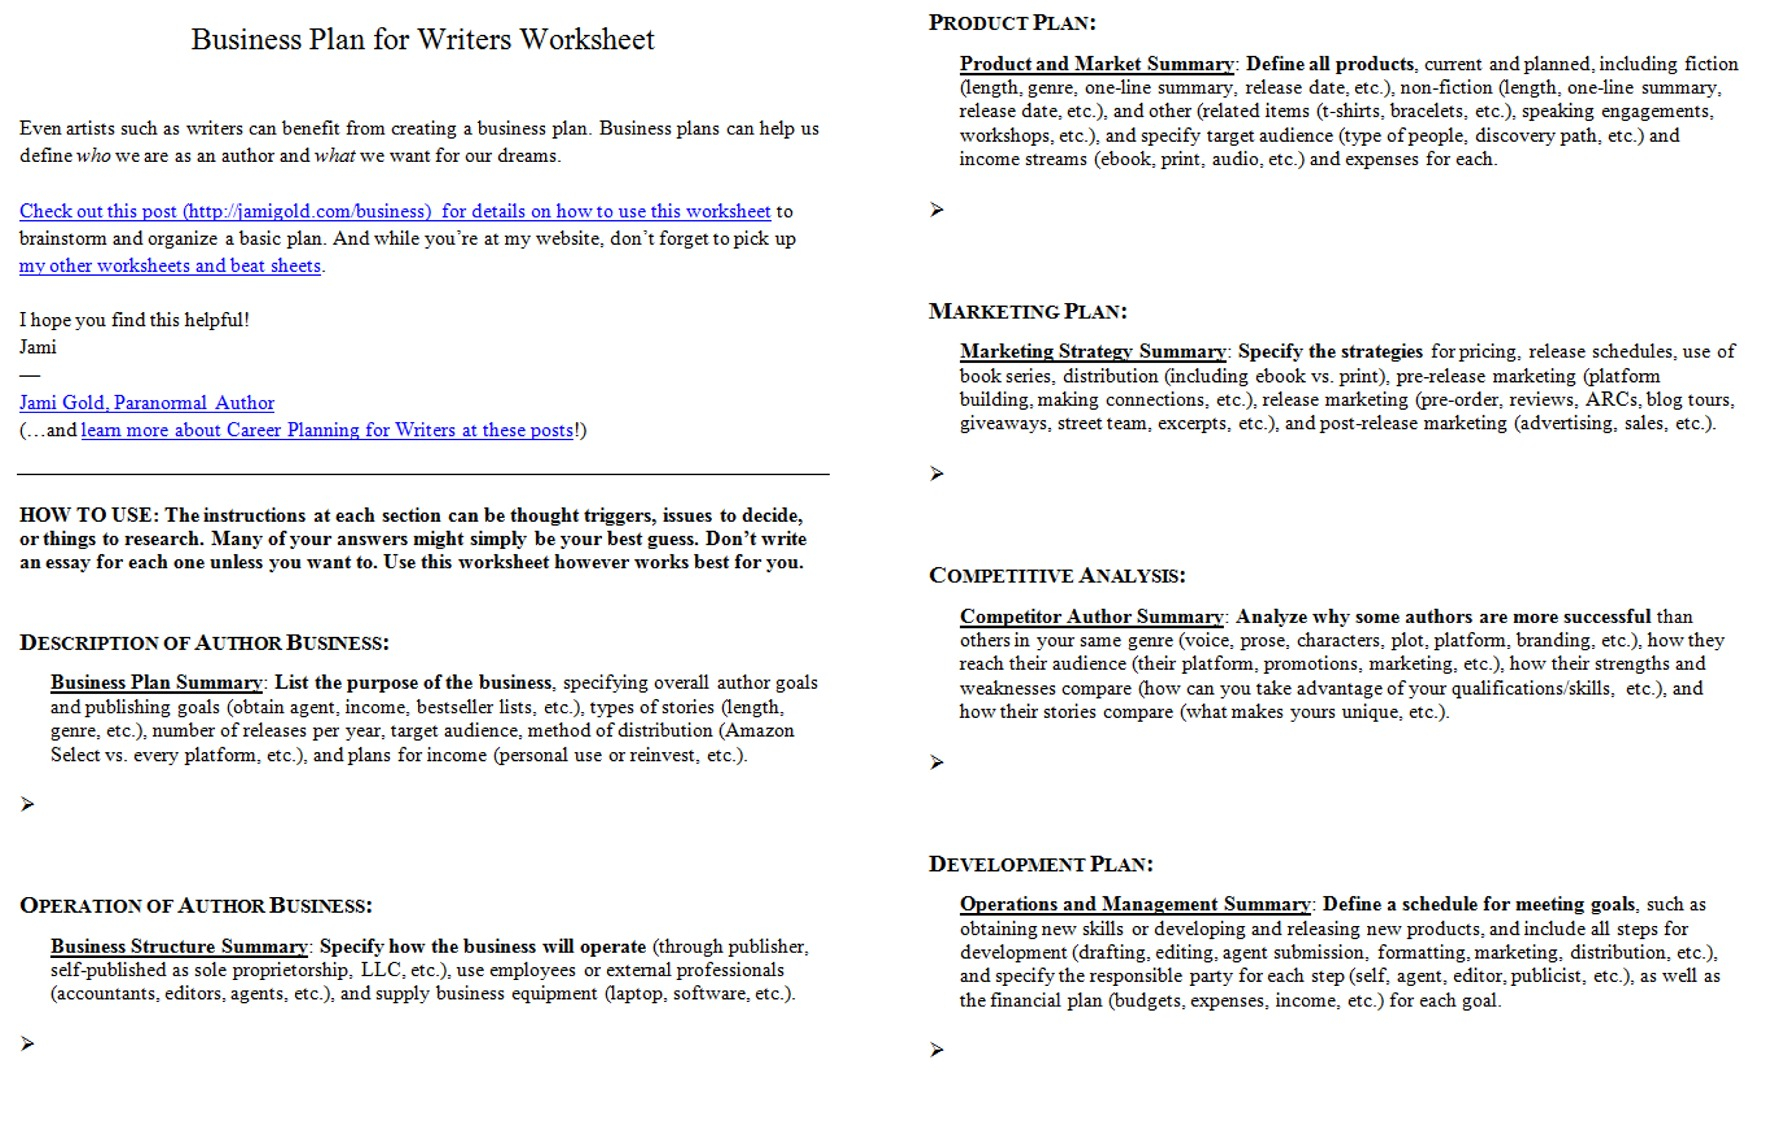 Weirdmailus  Nice Worksheets For Writers  Jami Gold Paranormal Author With Handsome Screen Shot Of Both Pages Of The Business Plan For Writers Worksheet With Attractive Abc Patterns Worksheets Also Gr  Math Worksheets In Addition Math Translation Worksheets And Recycling Worksheets For First Grade As Well As Numerator Denominator Worksheet Additionally Math Kids Worksheets From Jamigoldcom With Weirdmailus  Handsome Worksheets For Writers  Jami Gold Paranormal Author With Attractive Screen Shot Of Both Pages Of The Business Plan For Writers Worksheet And Nice Abc Patterns Worksheets Also Gr  Math Worksheets In Addition Math Translation Worksheets From Jamigoldcom